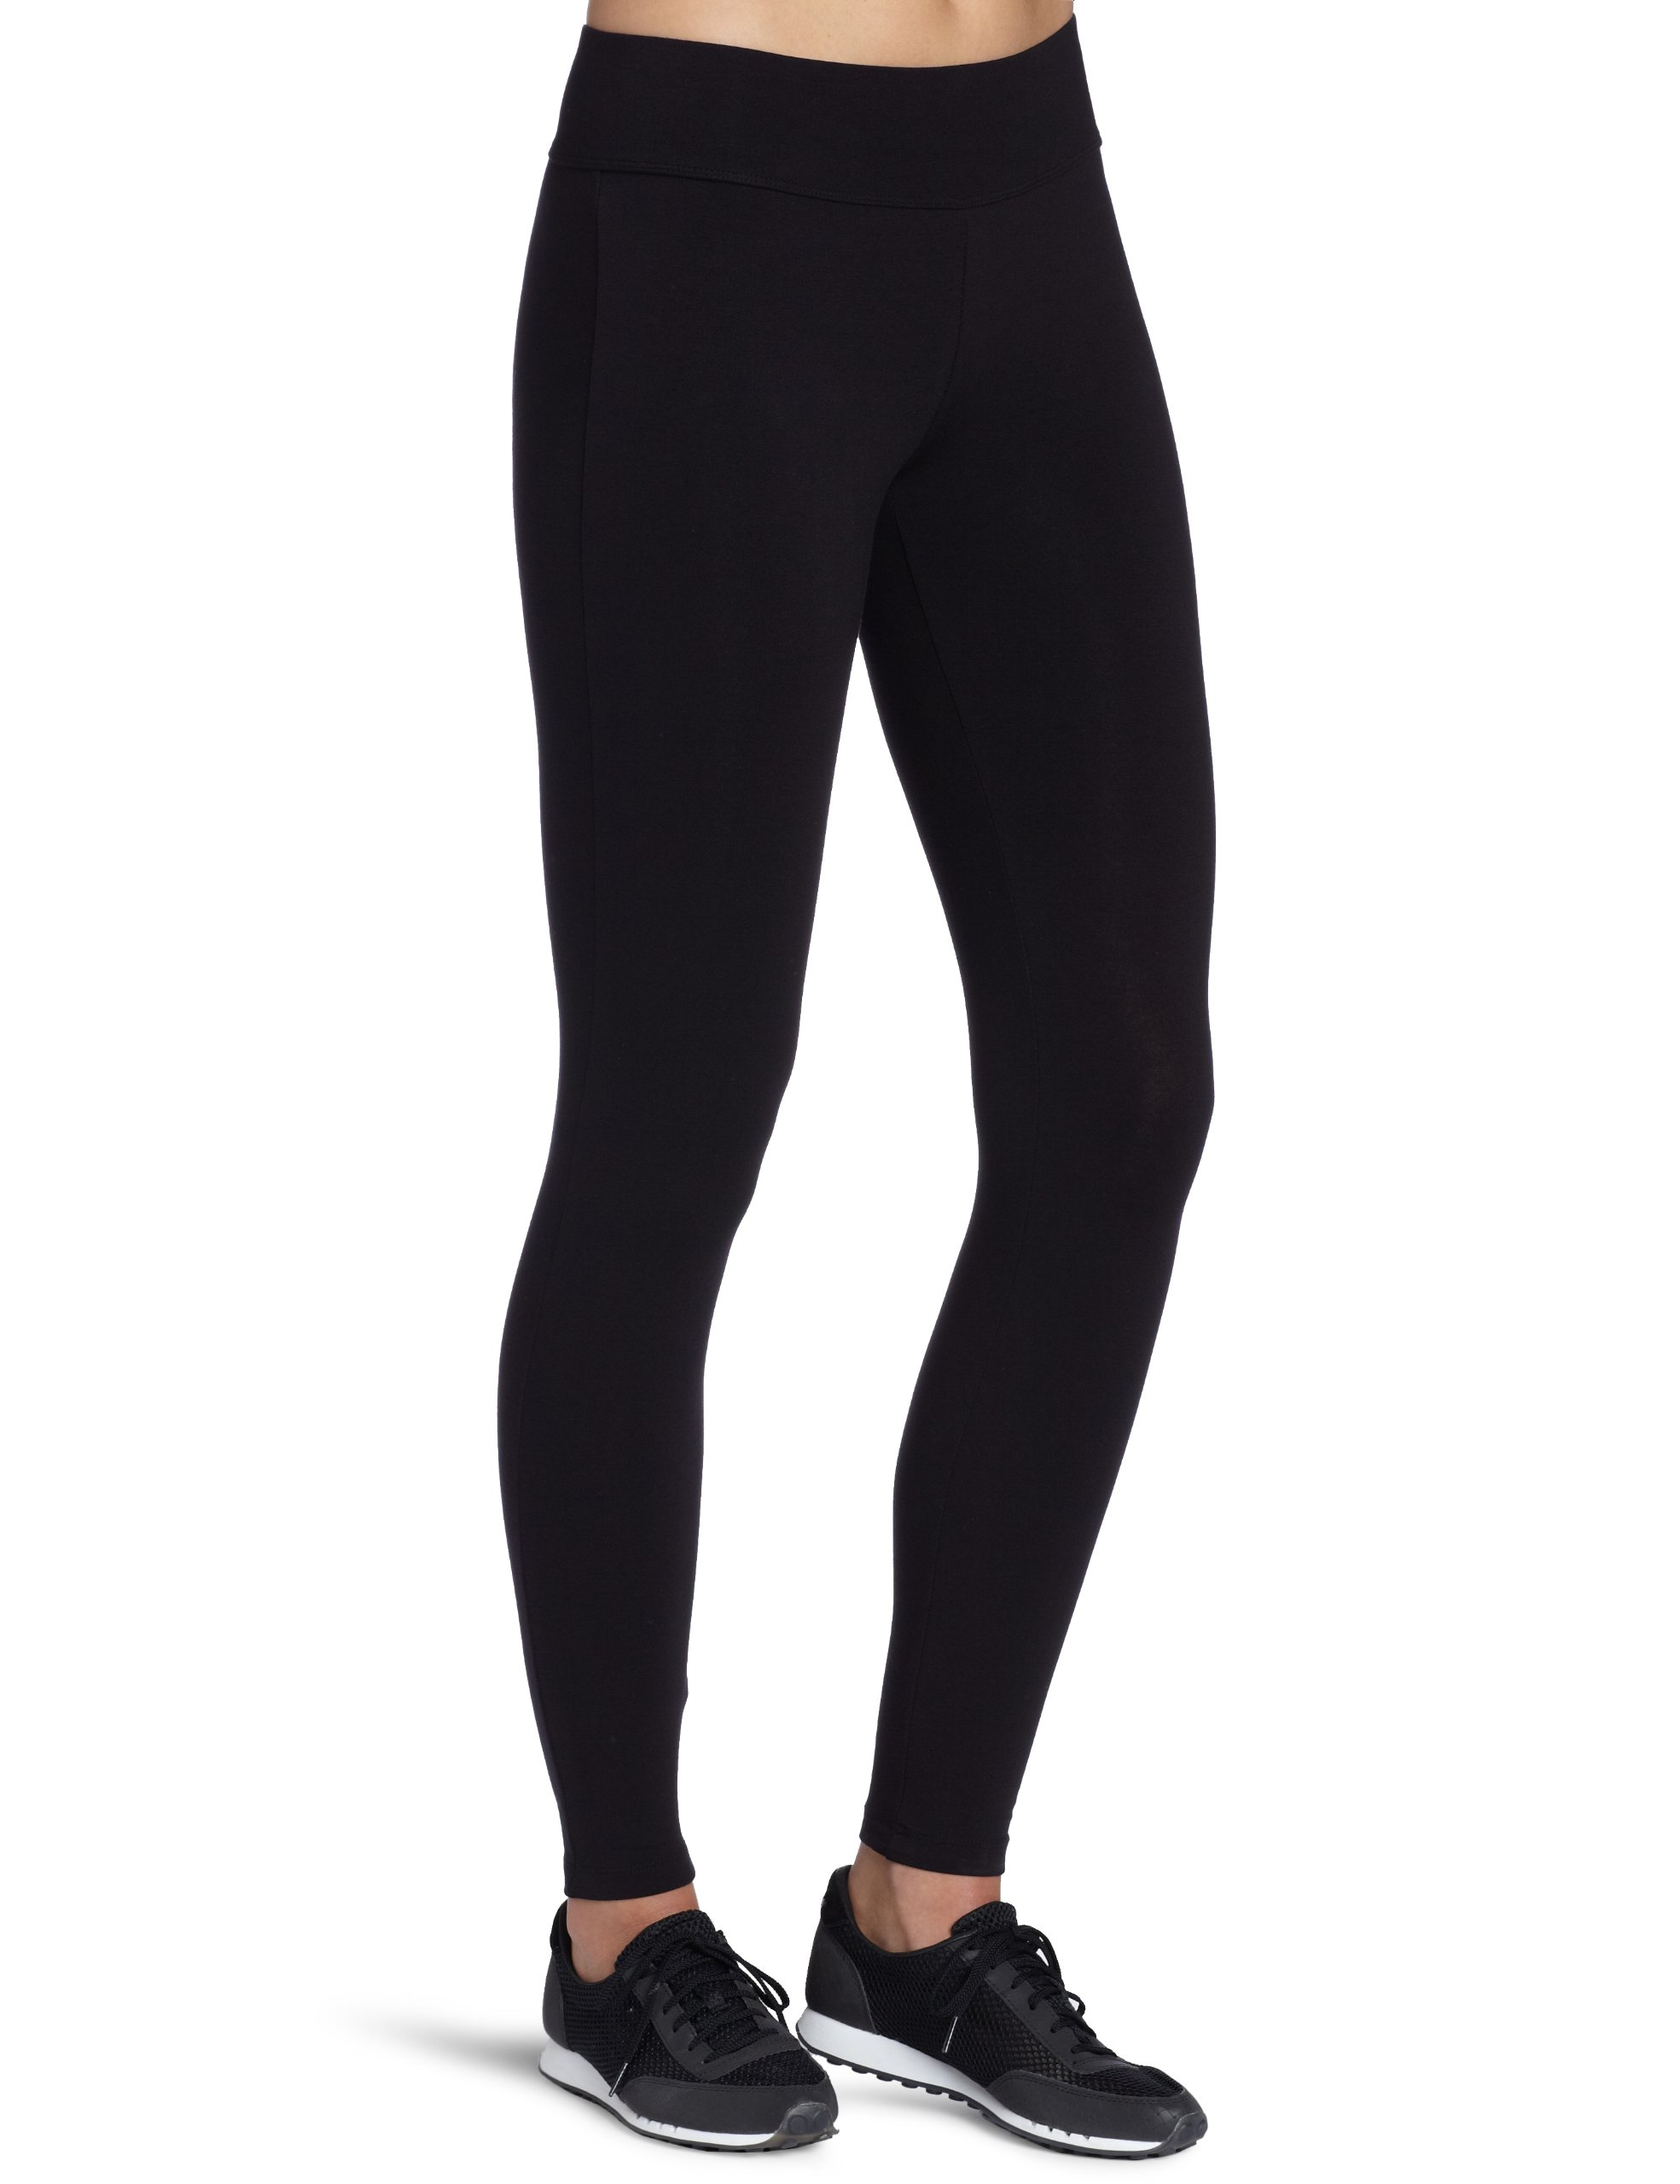 aed3d3f52ce74 Spalding Women's Ankle Legging - Women's Leggings & Tights: High ...